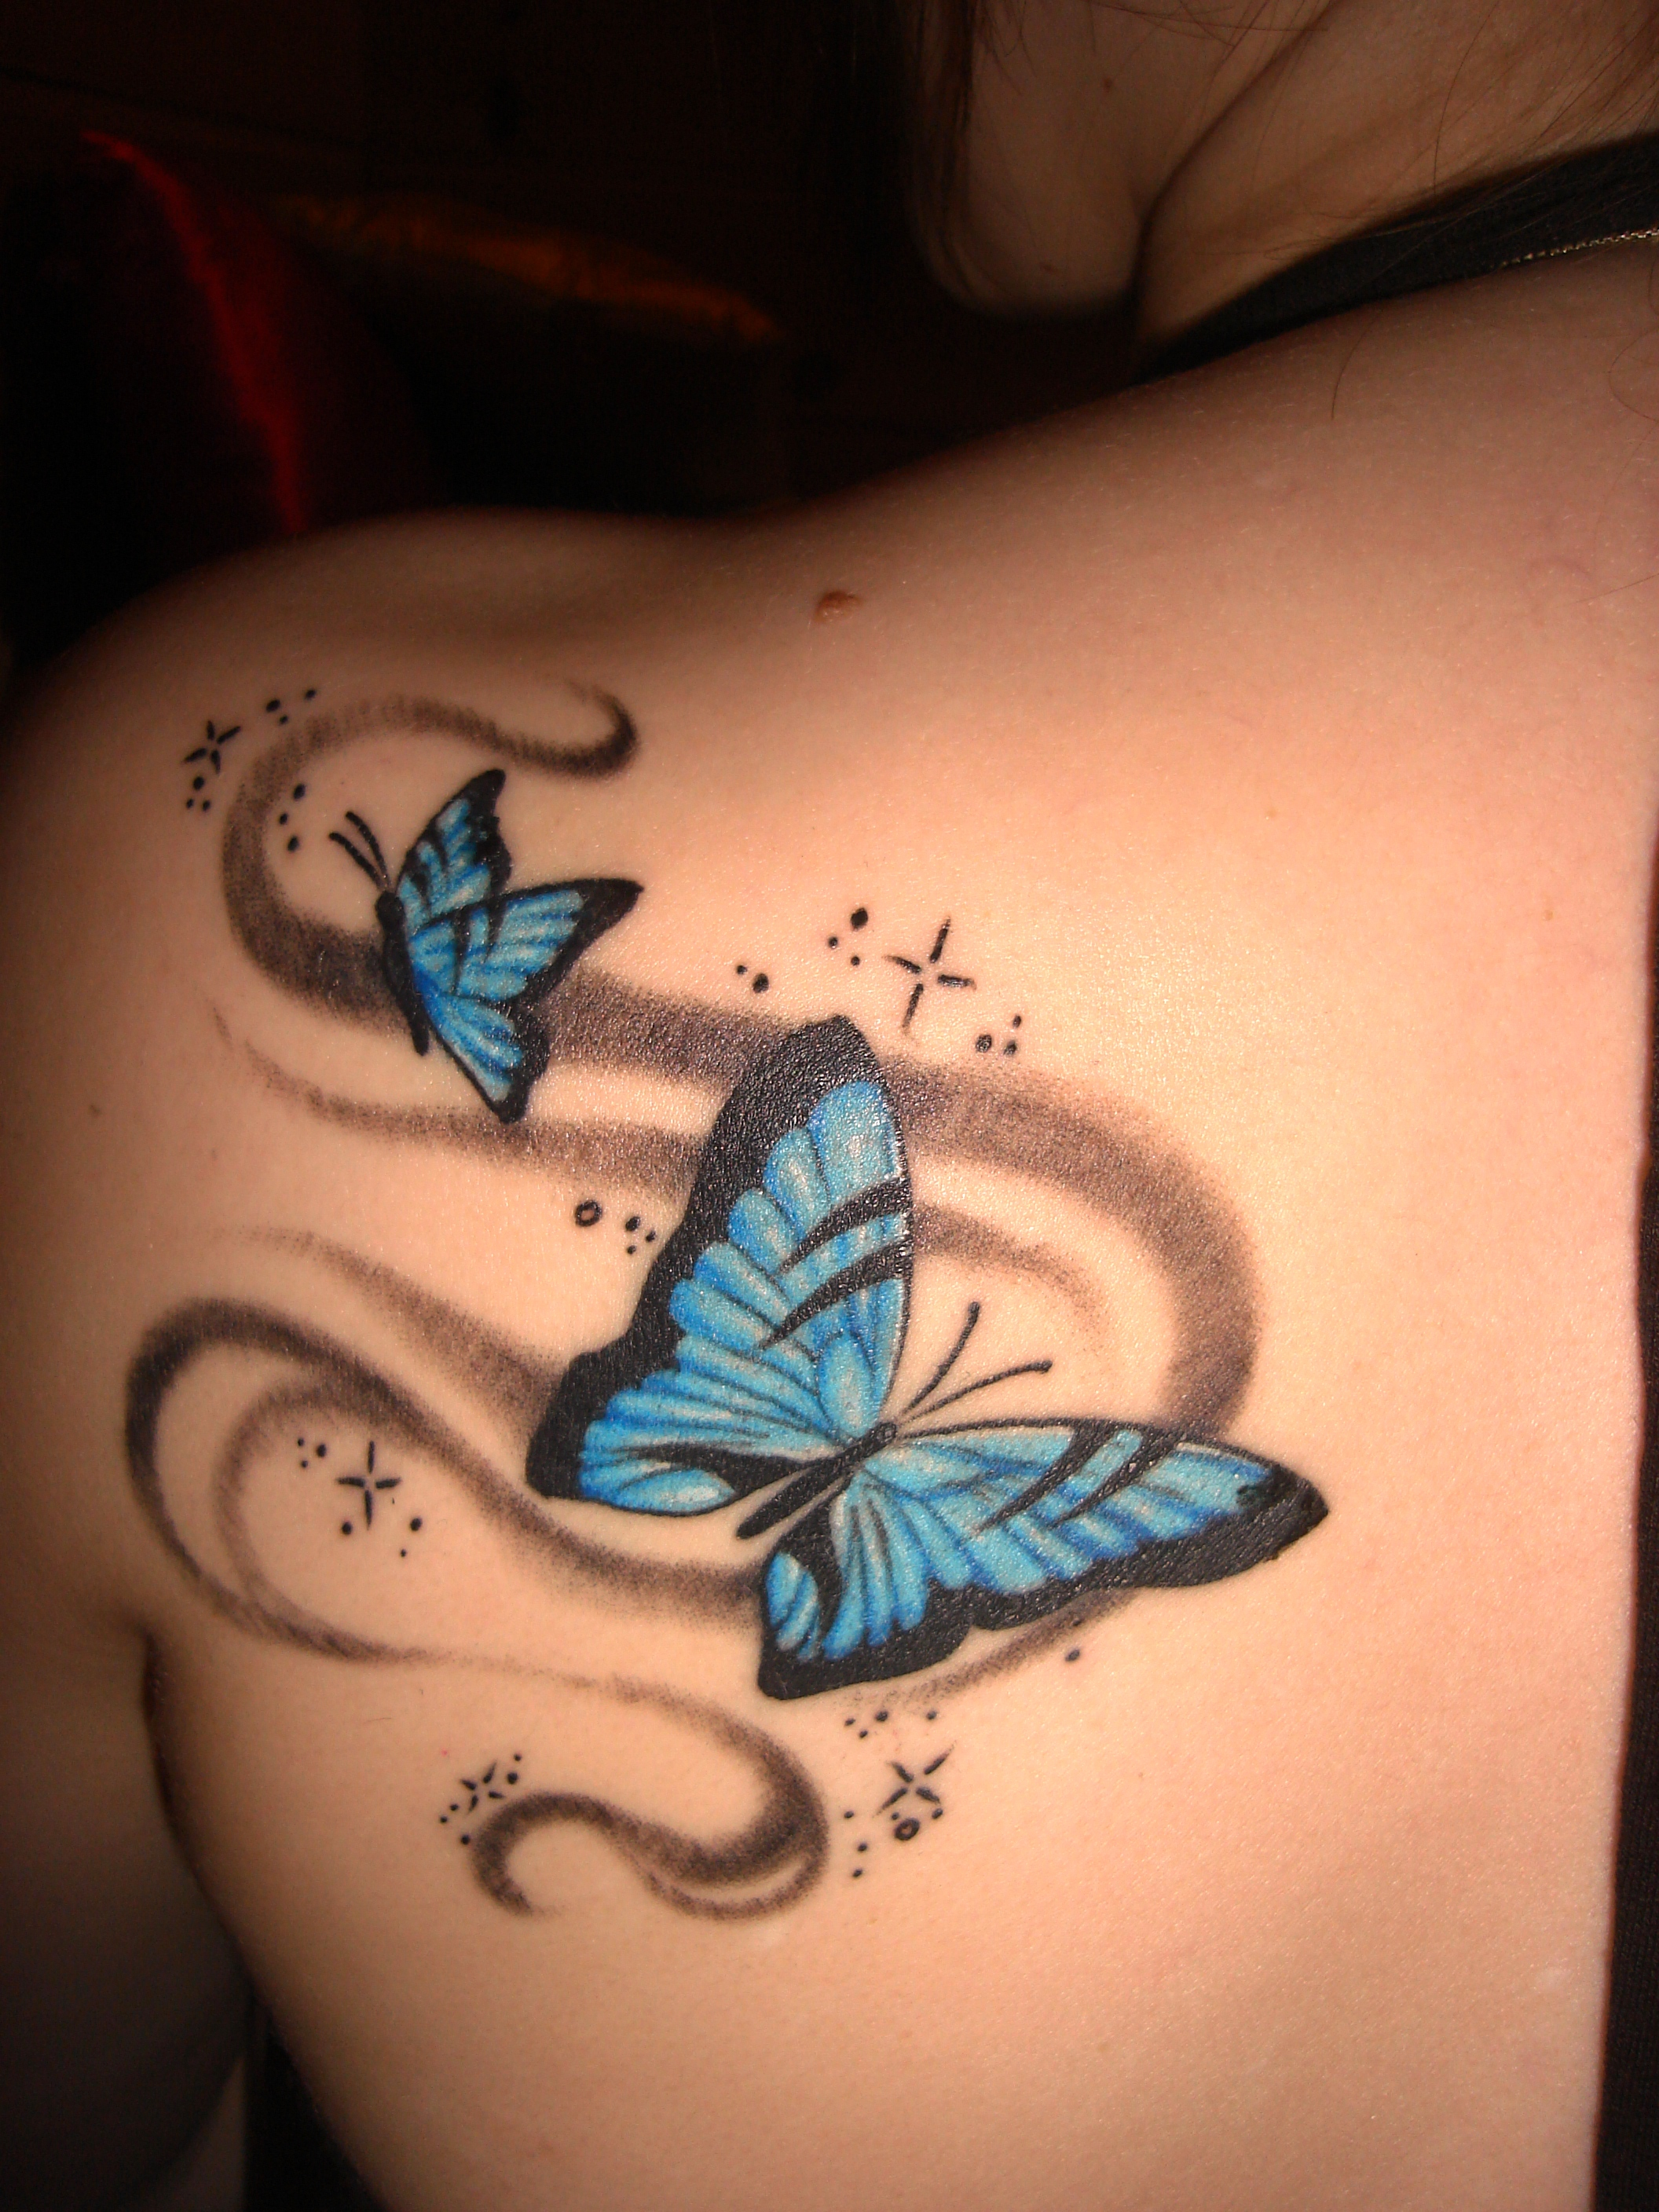 7-butterfly tattoo ideas